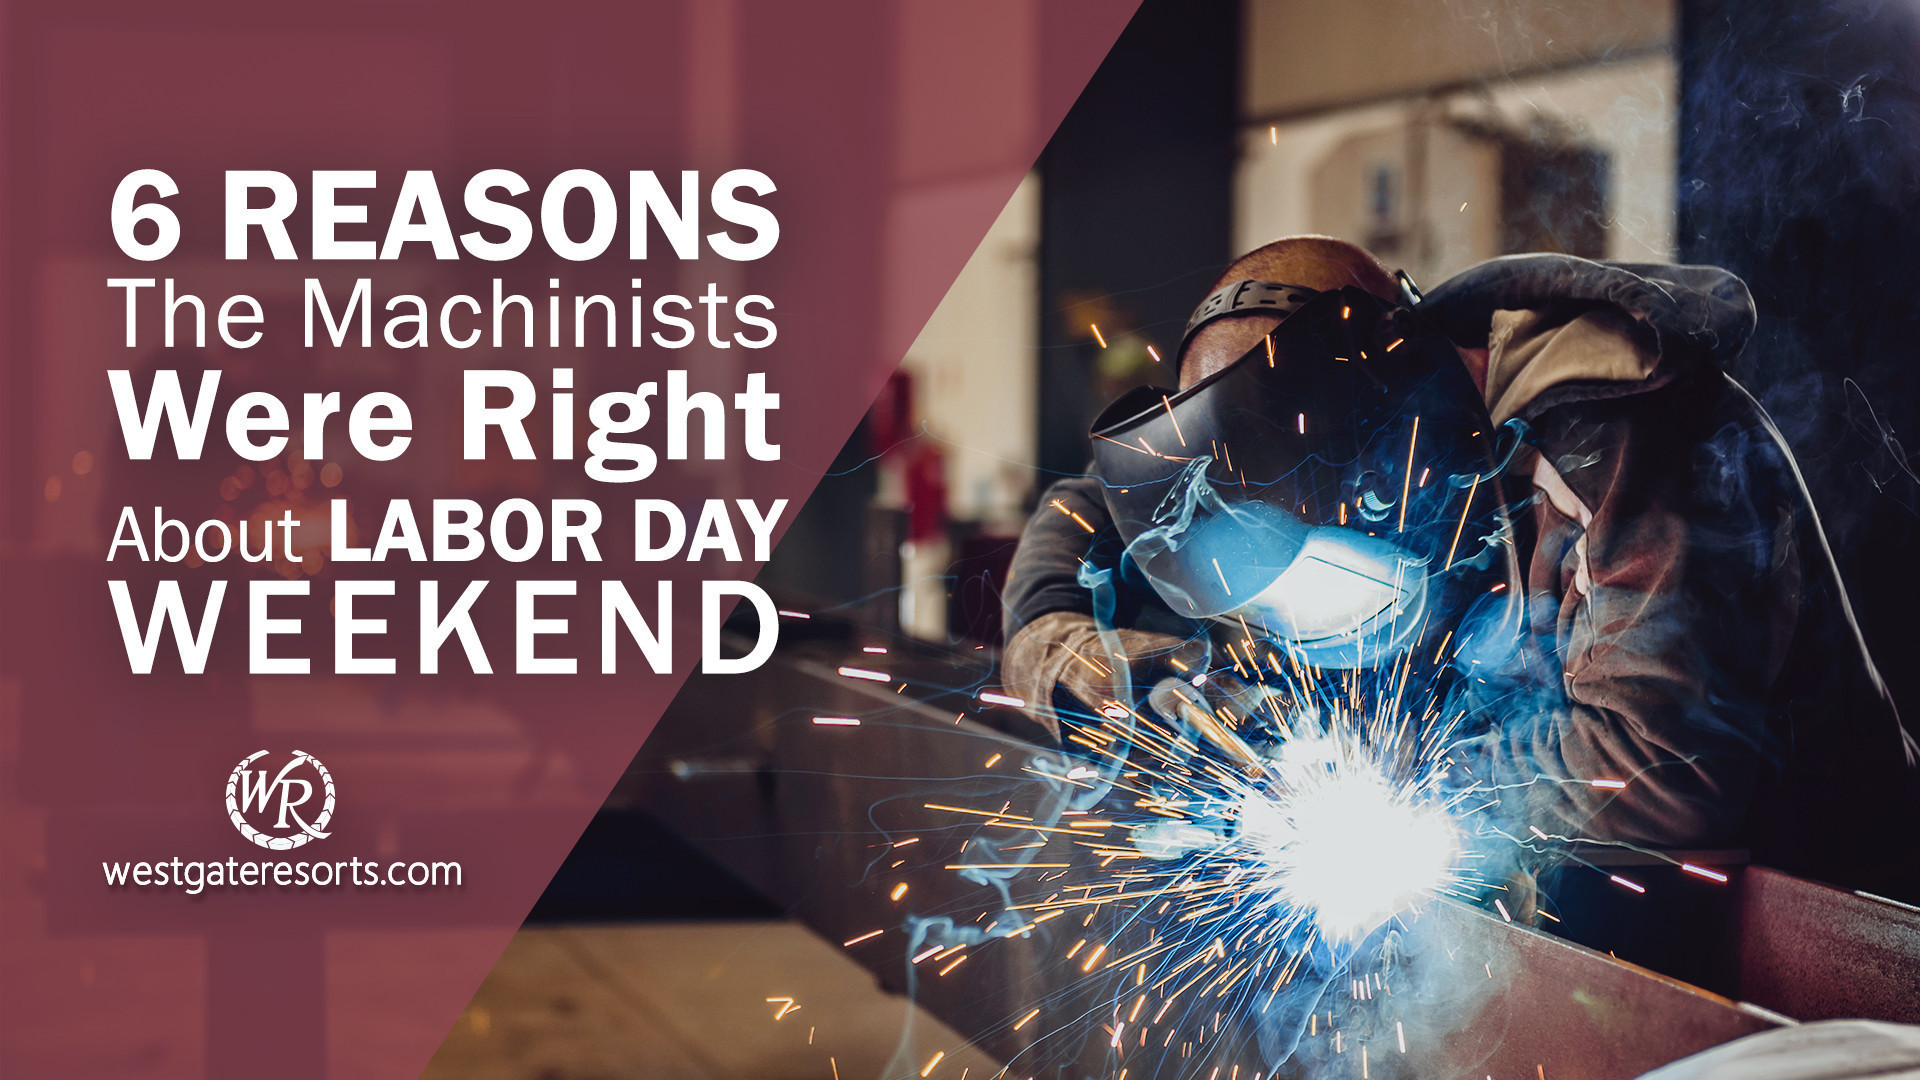 6 Reasons The Machinists Were Right About Labor Day Weekend | Where to Go For Labor Day Weekend | Westgate